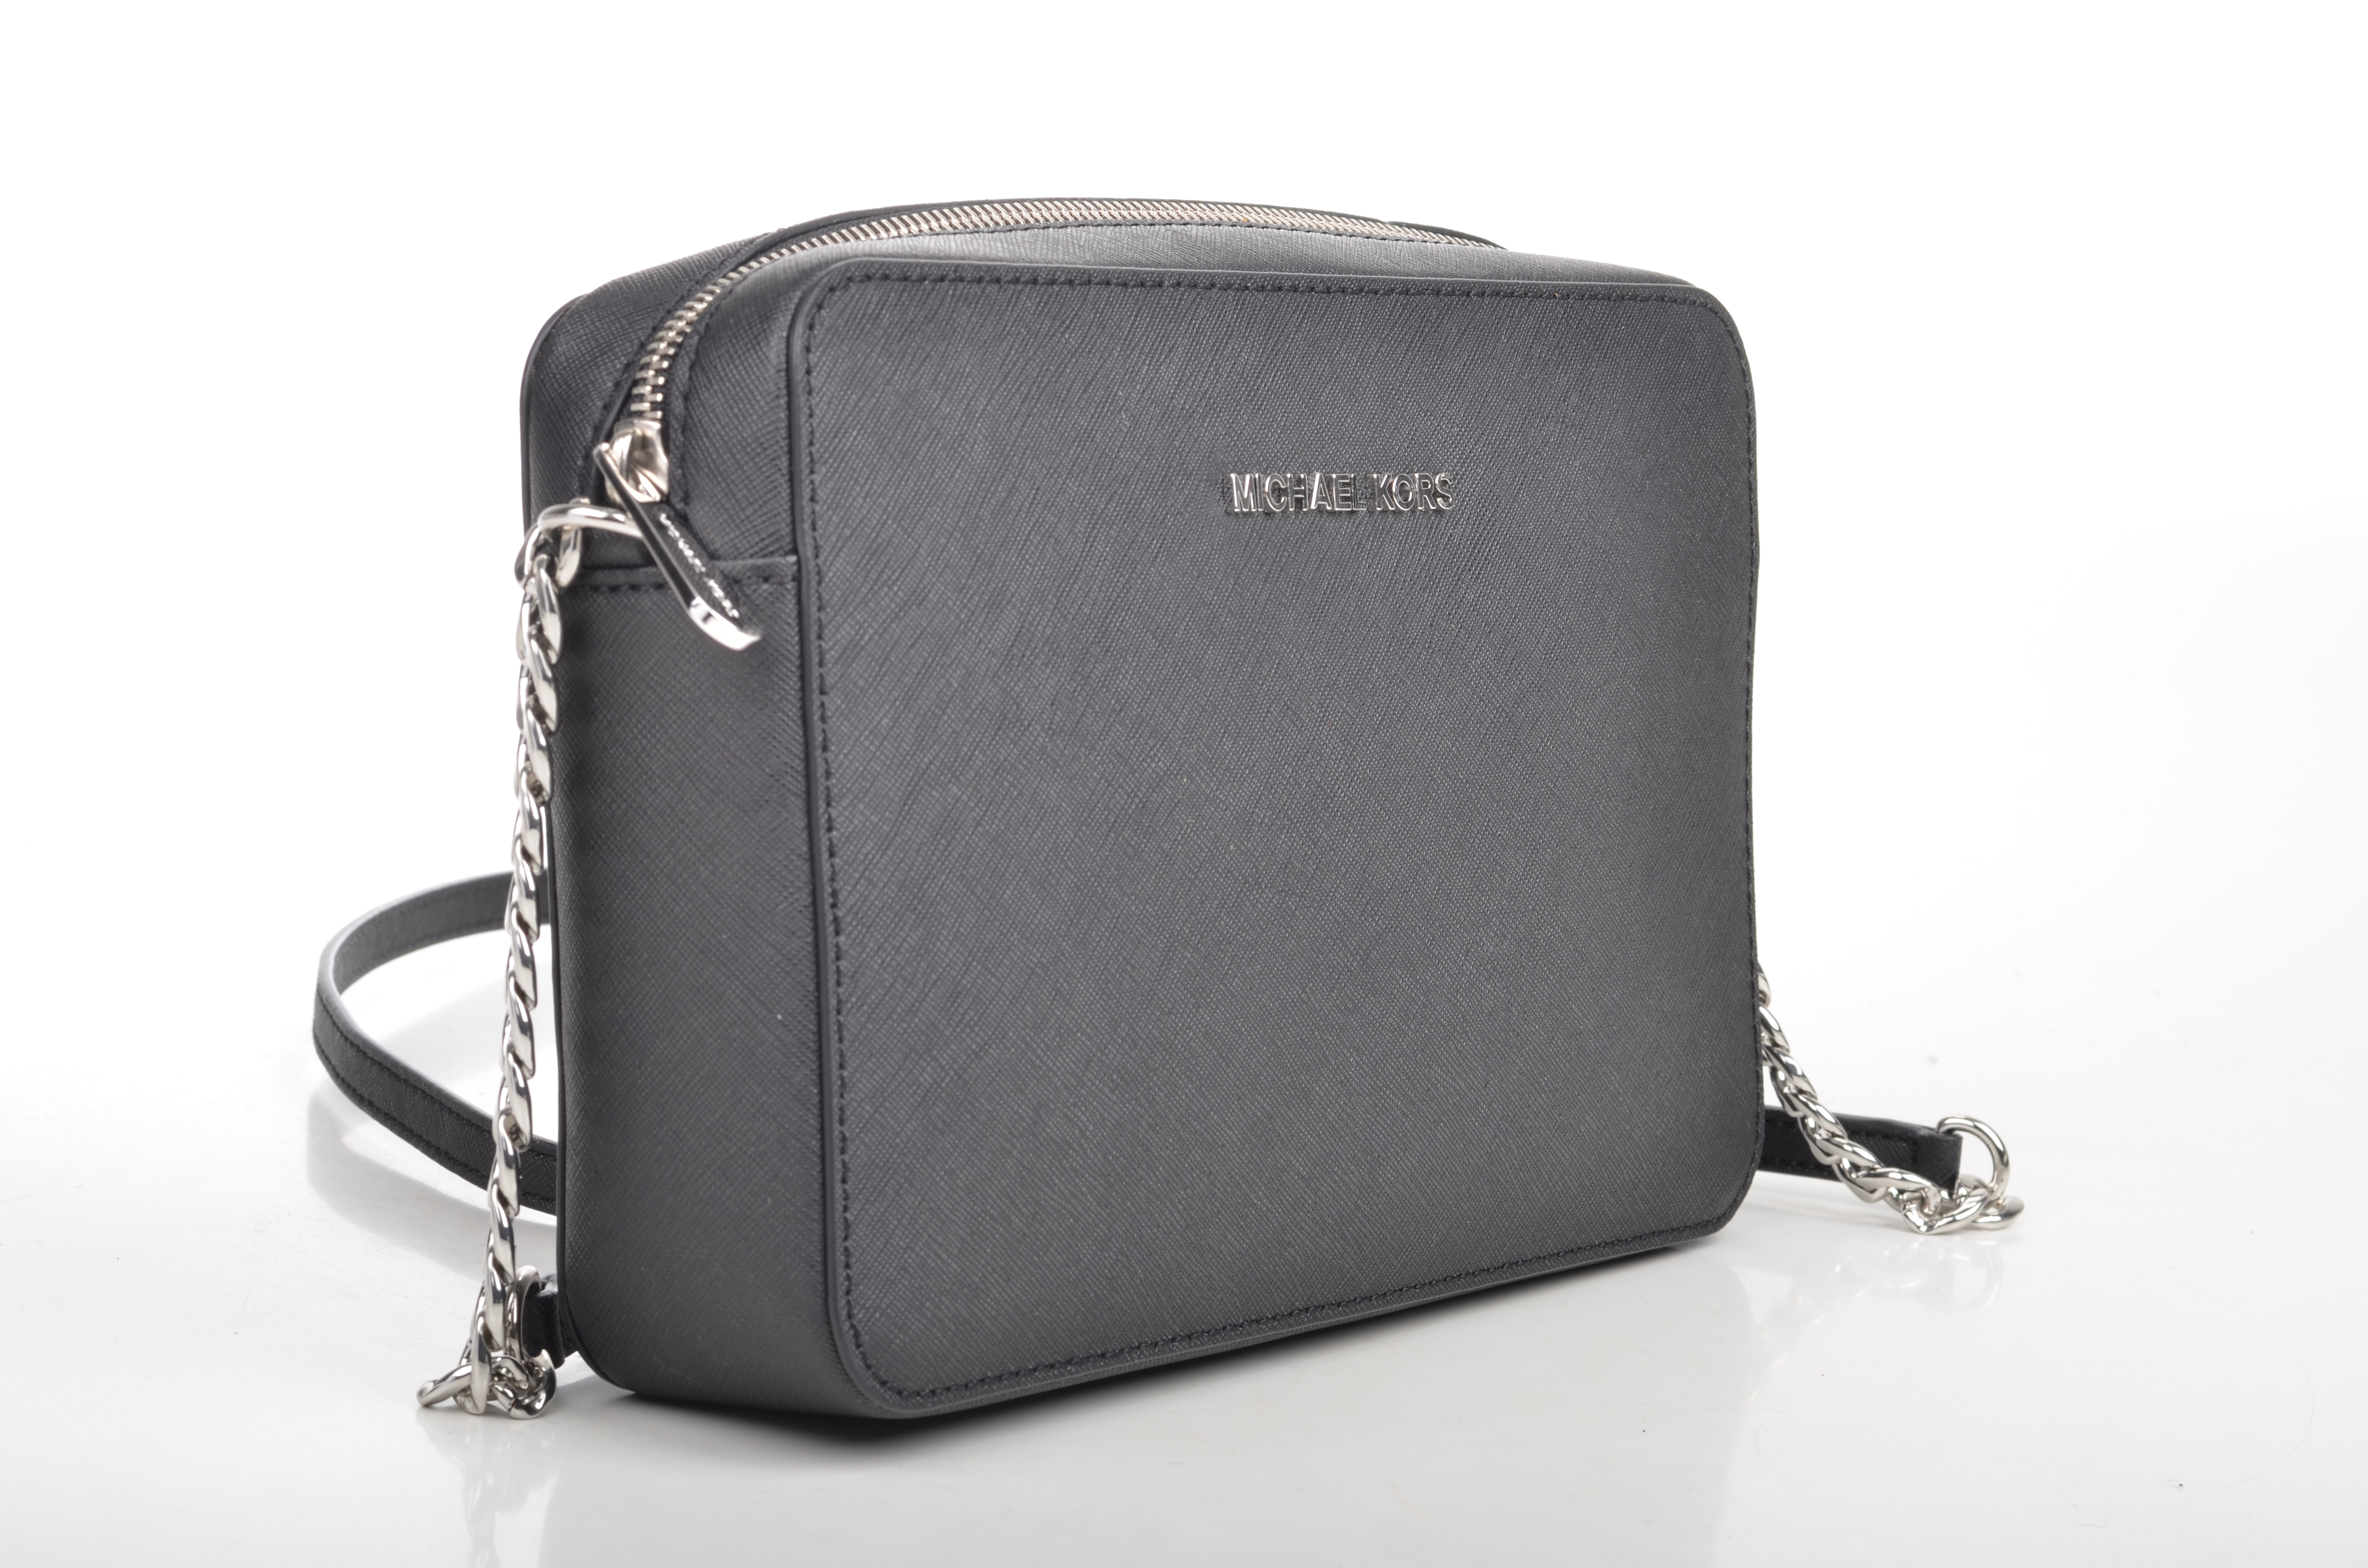 michael kors crossbody jet set travel